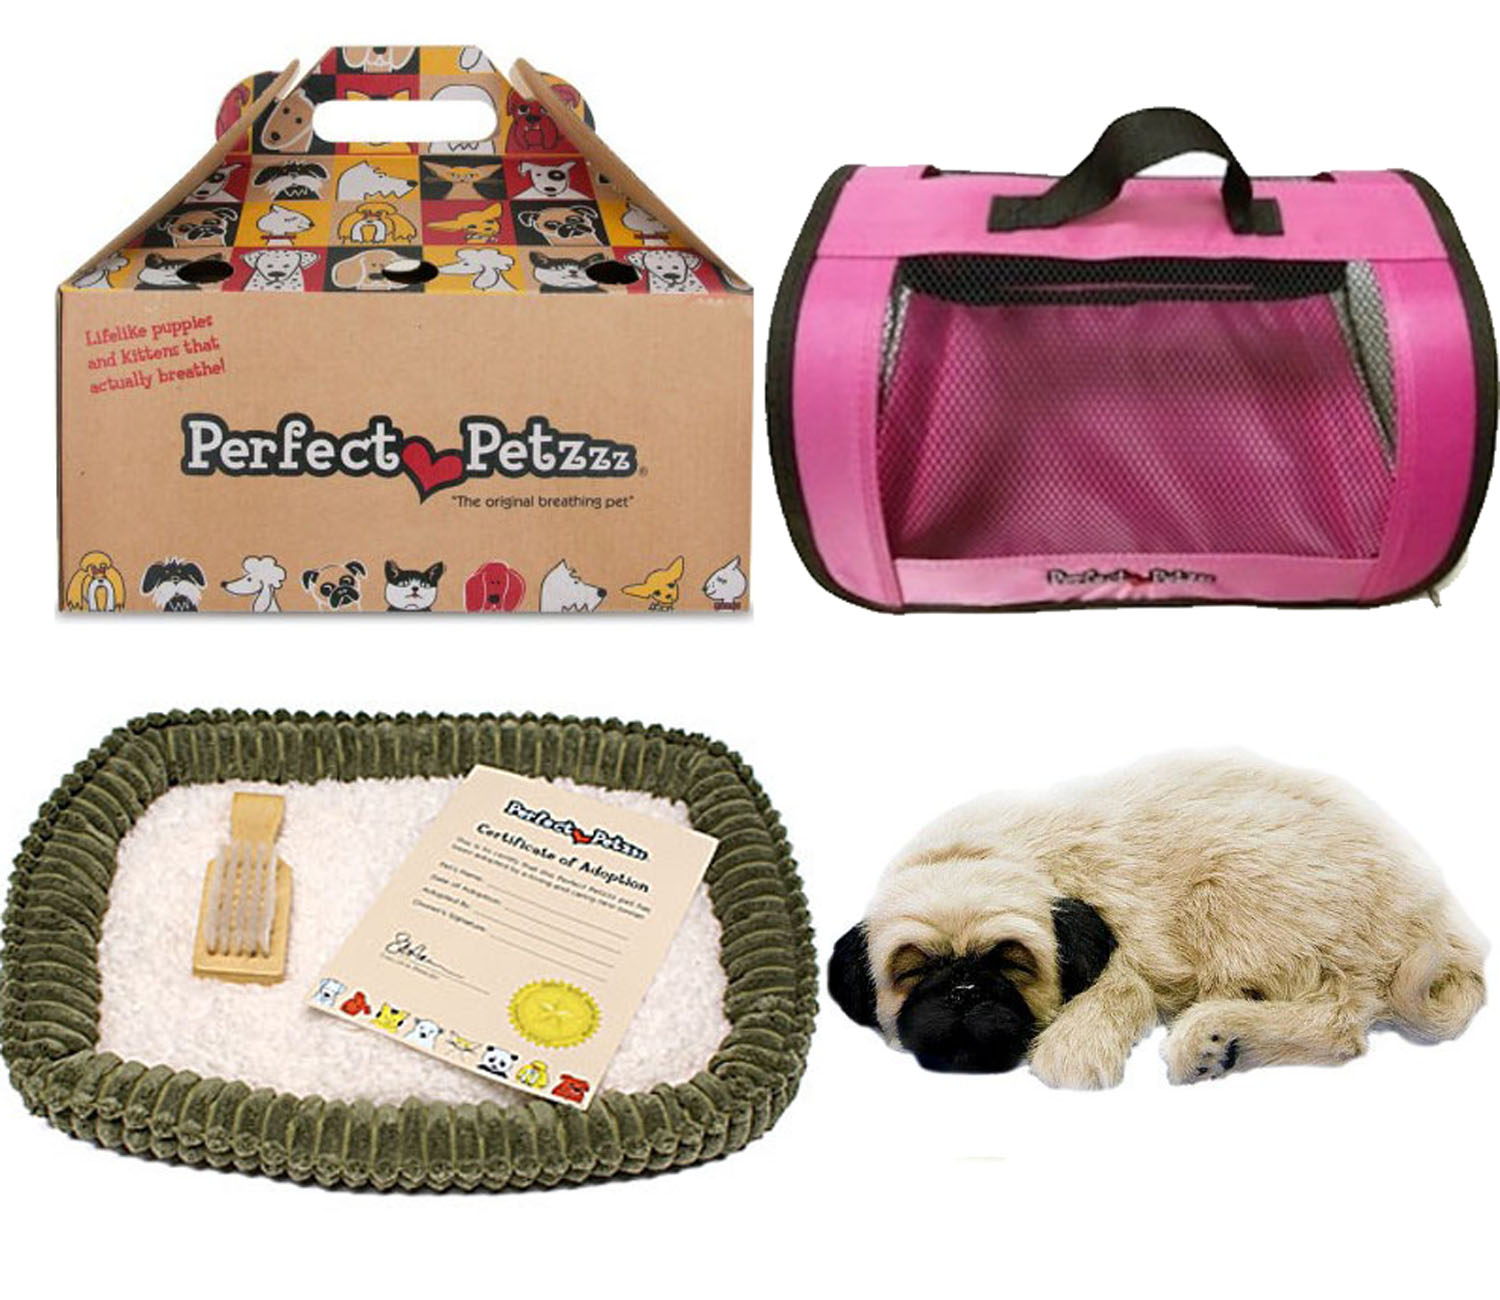 perfect petzzz pug perfect petzzz huggable pug puppy with pink tote for plush 6084